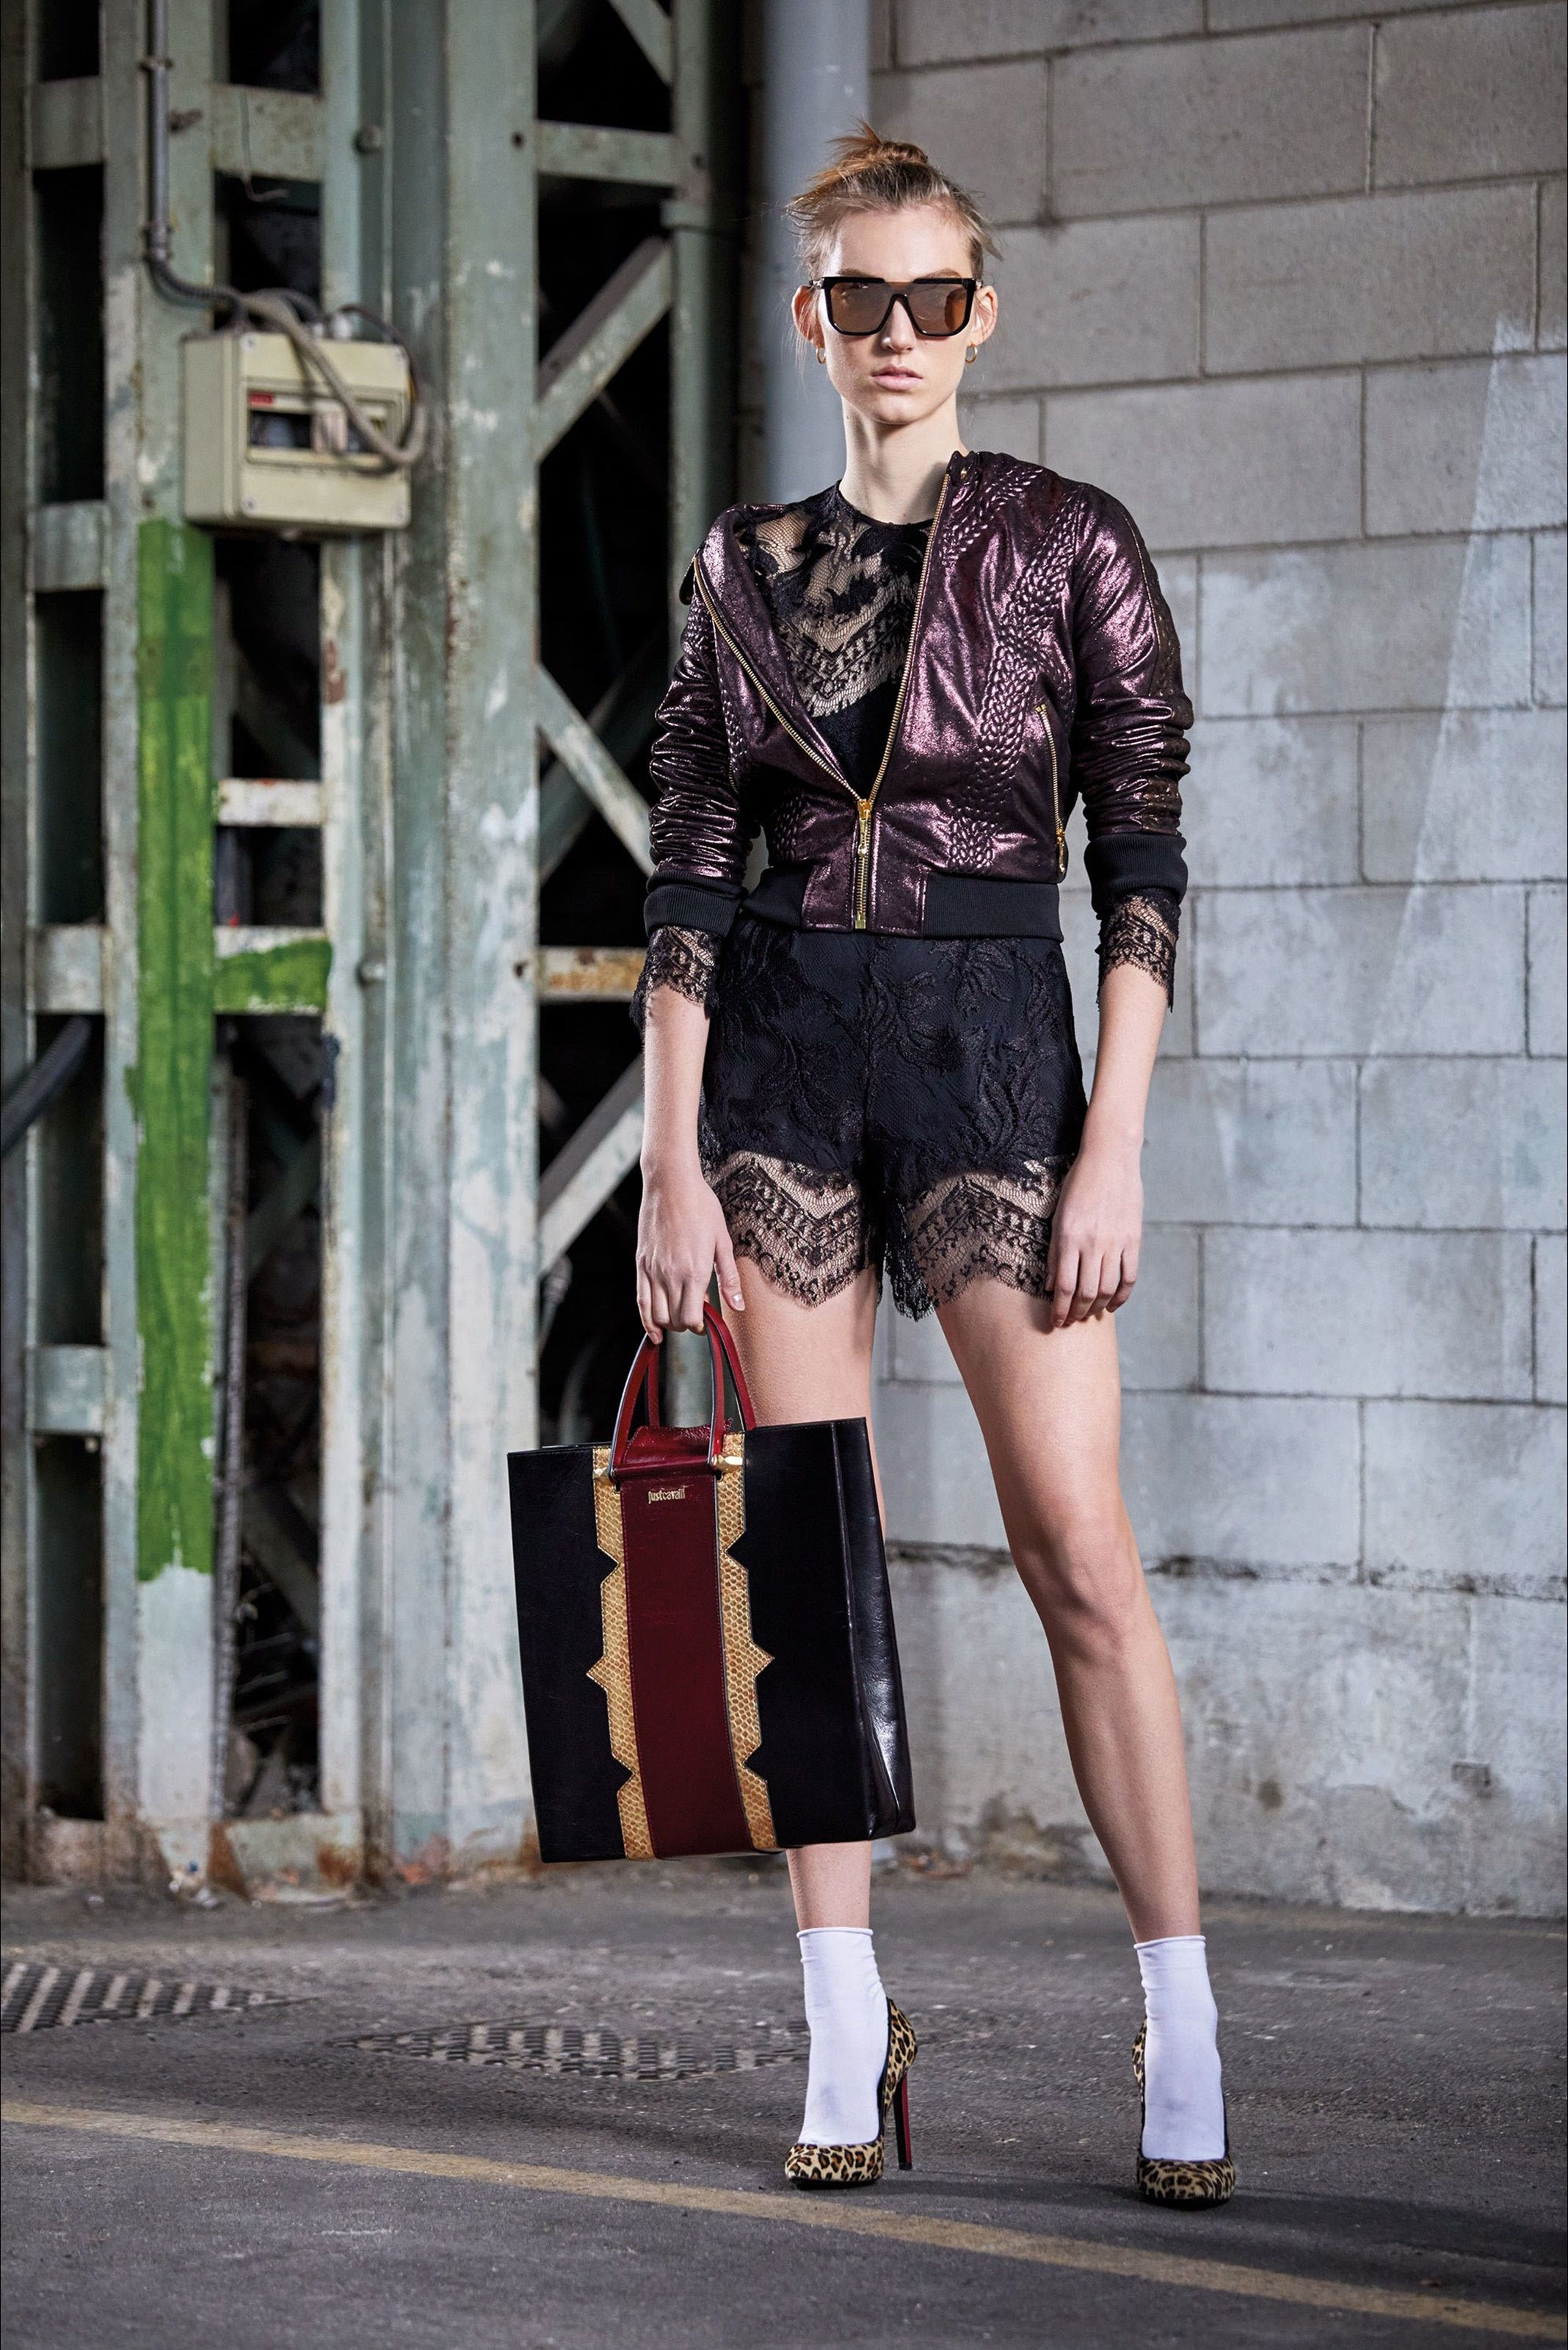 bb8b3c040d3c Sfilata Just Cavalli New York - Pre-Collezioni Autunno-Inverno 2018-19 -  Vogue